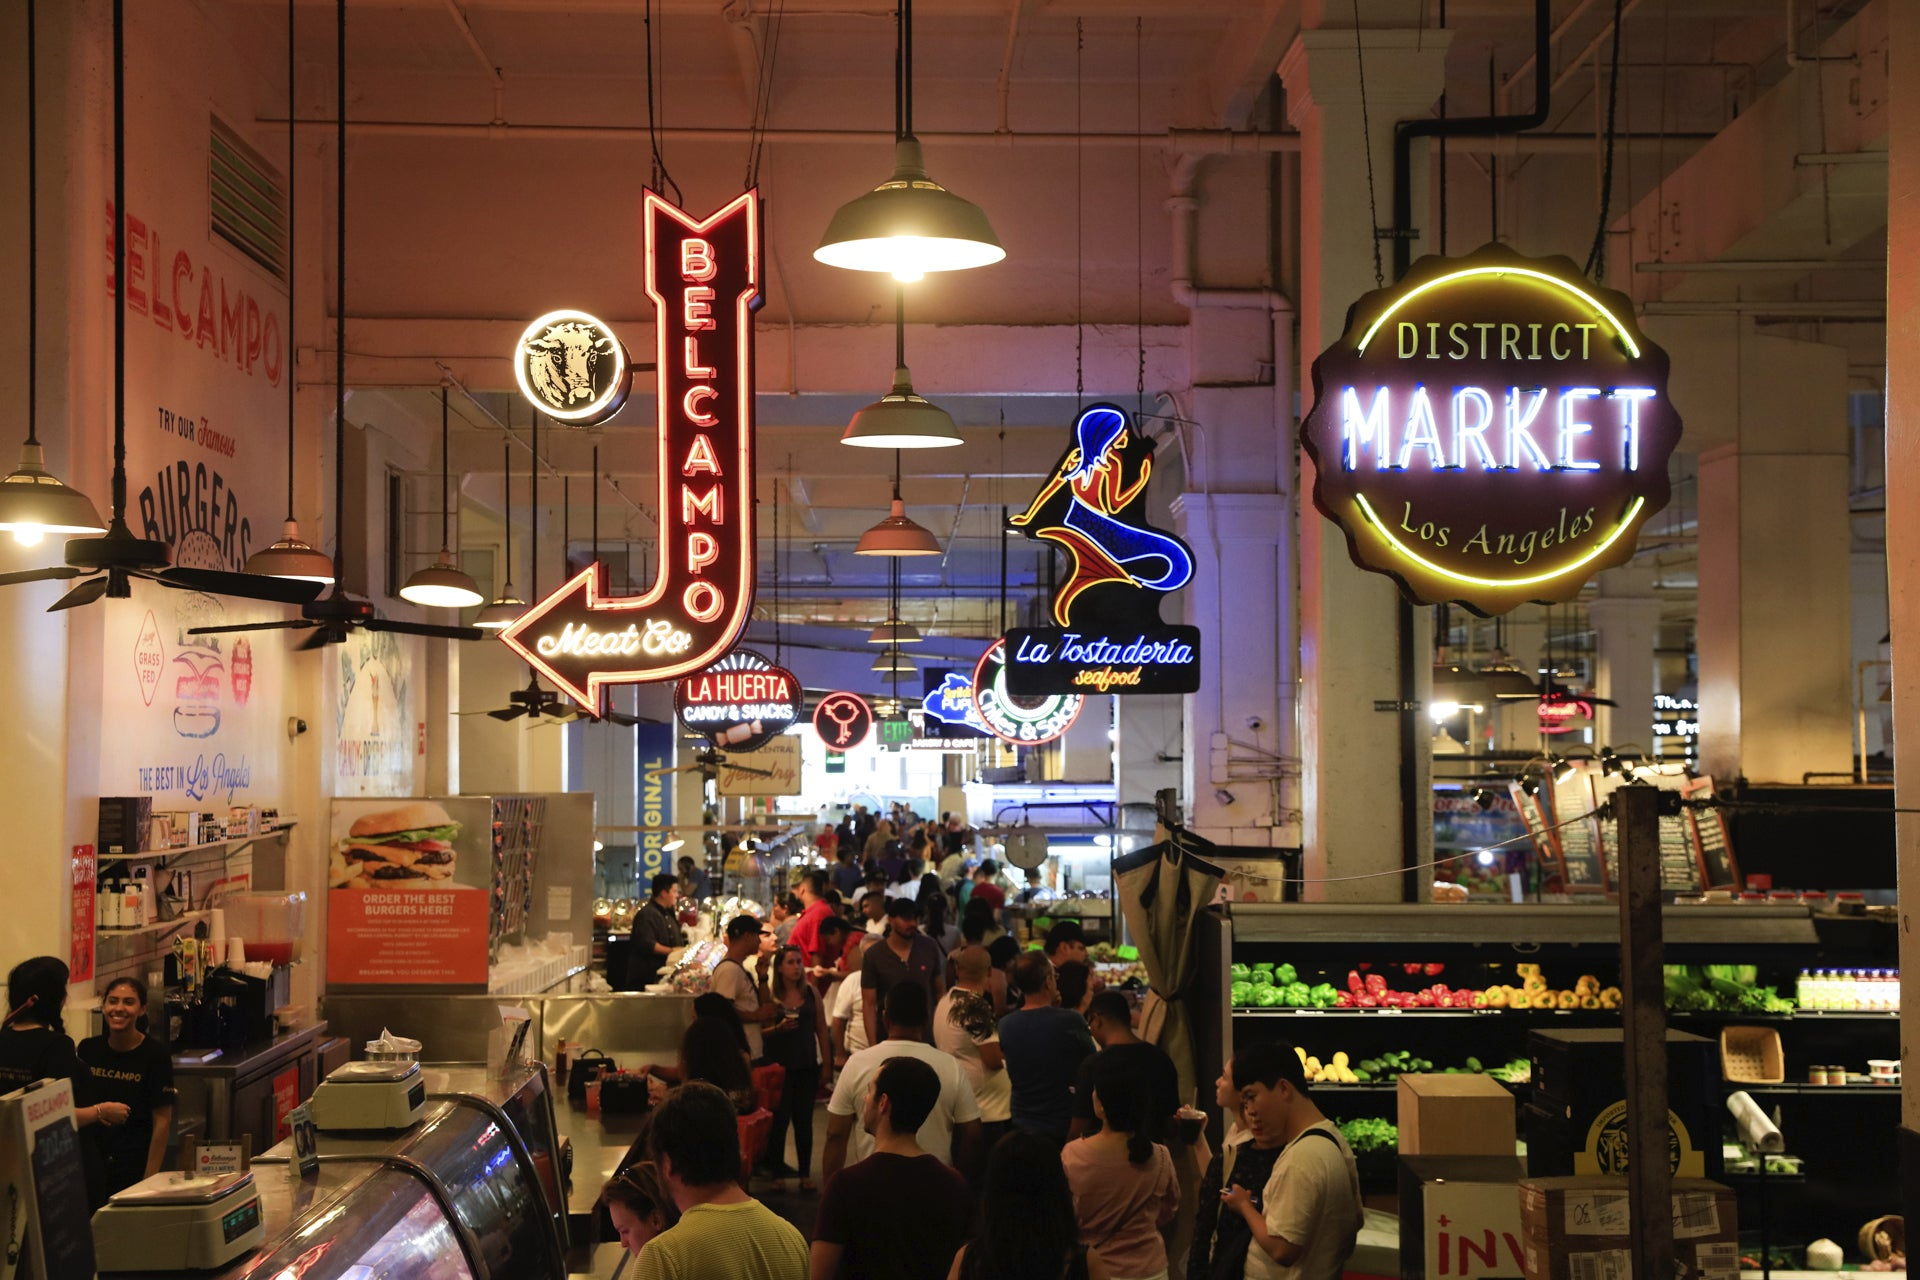 Grand Central Market in Downtown L.A.